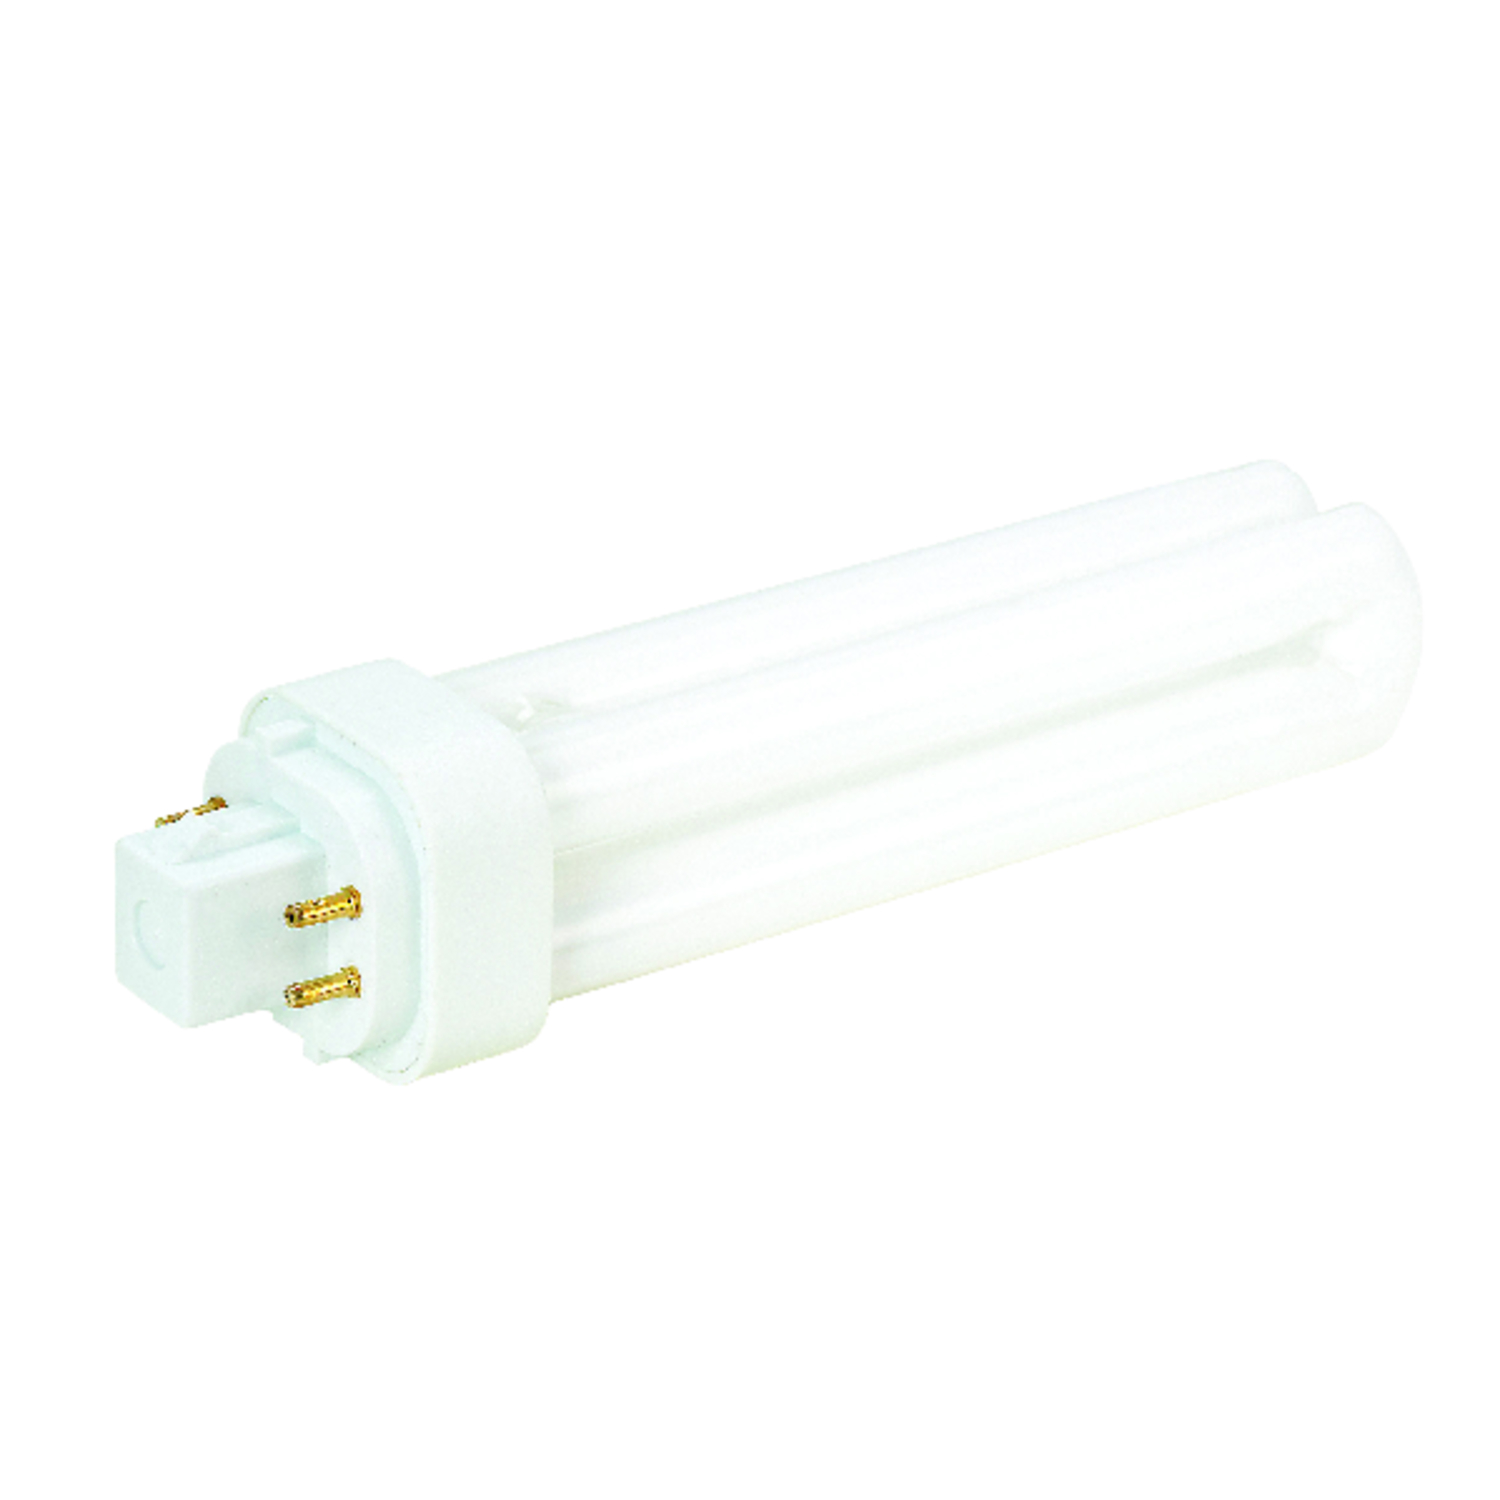 Westinghouse  18 watts DTT  5.81 in. Cool White  Fluorescent Bulb  Double Tube  1 pk 1200 lumens